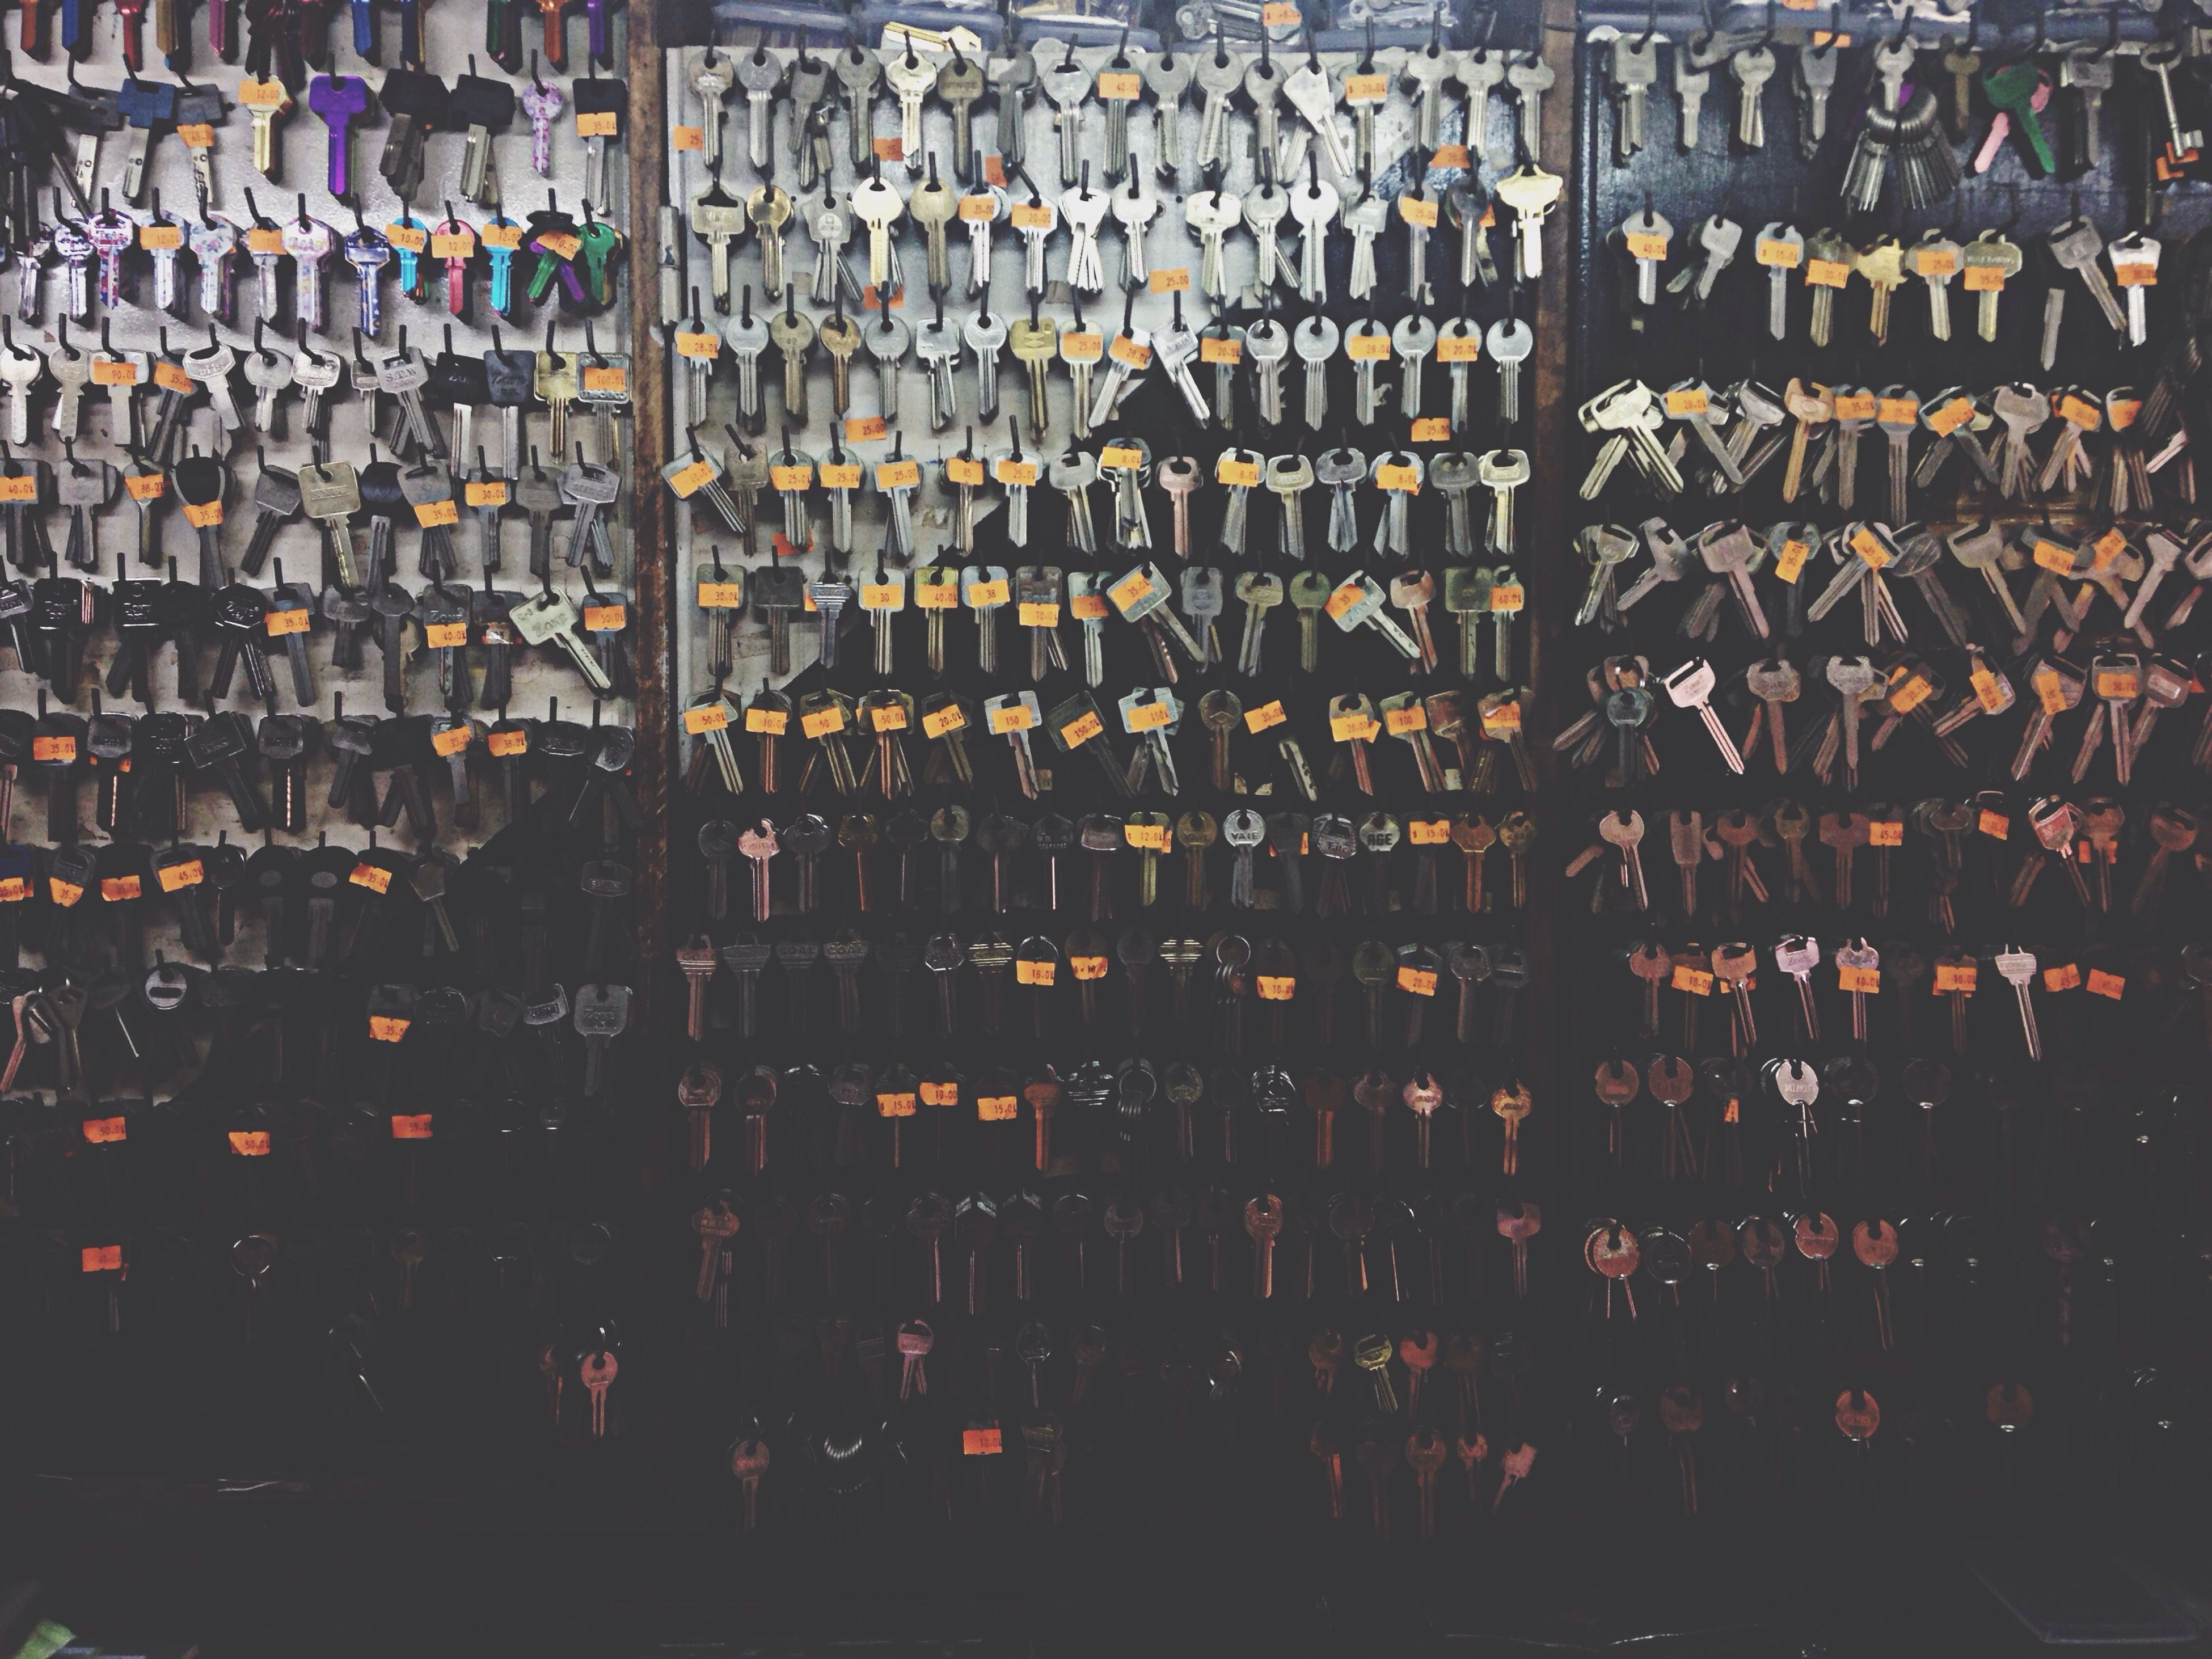 indoors, large group of objects, abundance, full frame, backgrounds, in a row, order, arrangement, pattern, variation, metal, side by side, repetition, hanging, high angle view, no people, store, retail, collection, metallic